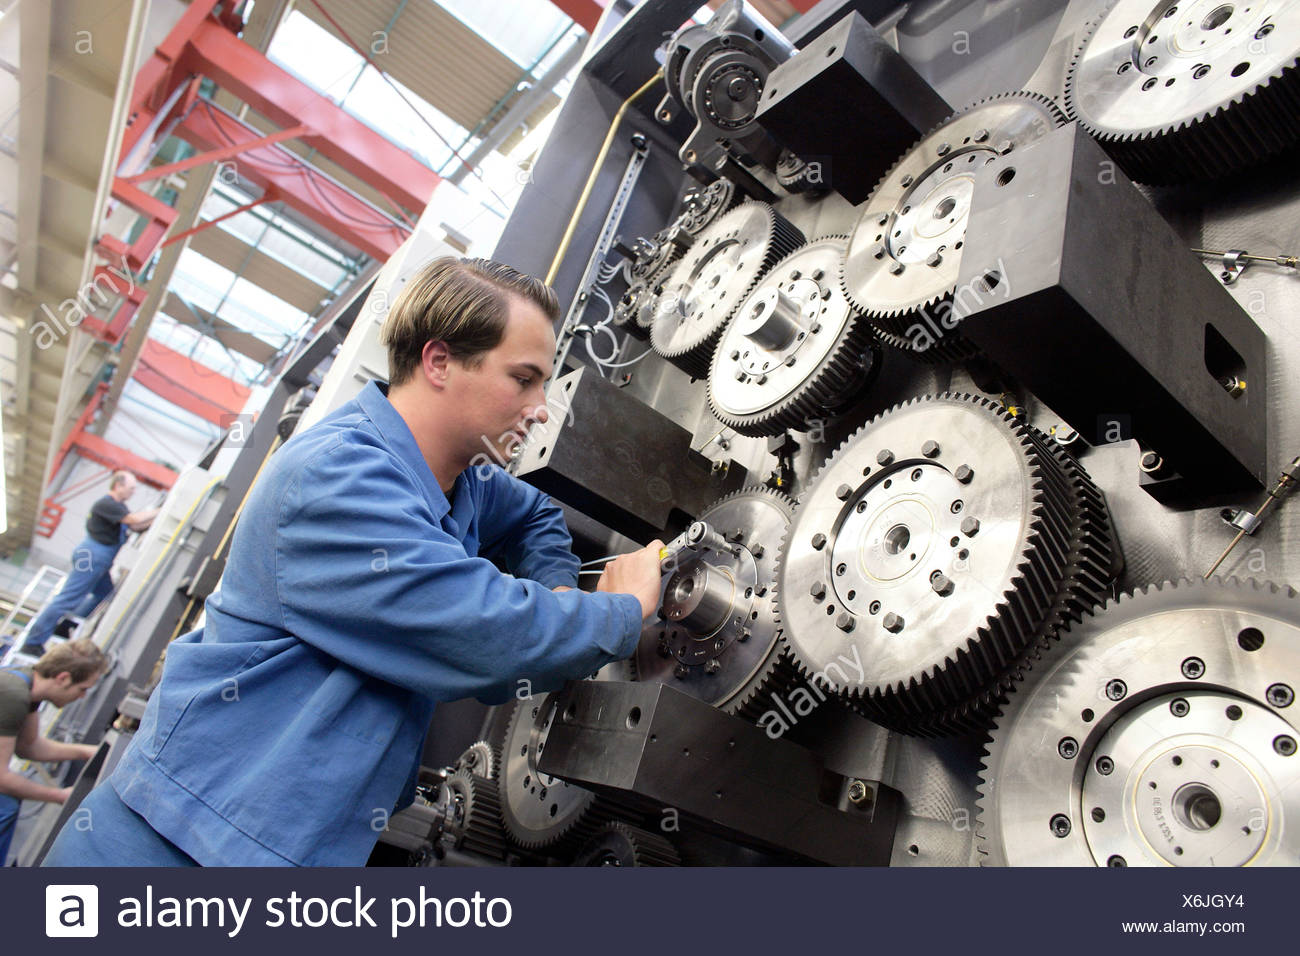 Laborer tightening the gears of an impression cylinder of a reel-fed offset printing machine, manufacture, Production MAN Rolan - Stock Image